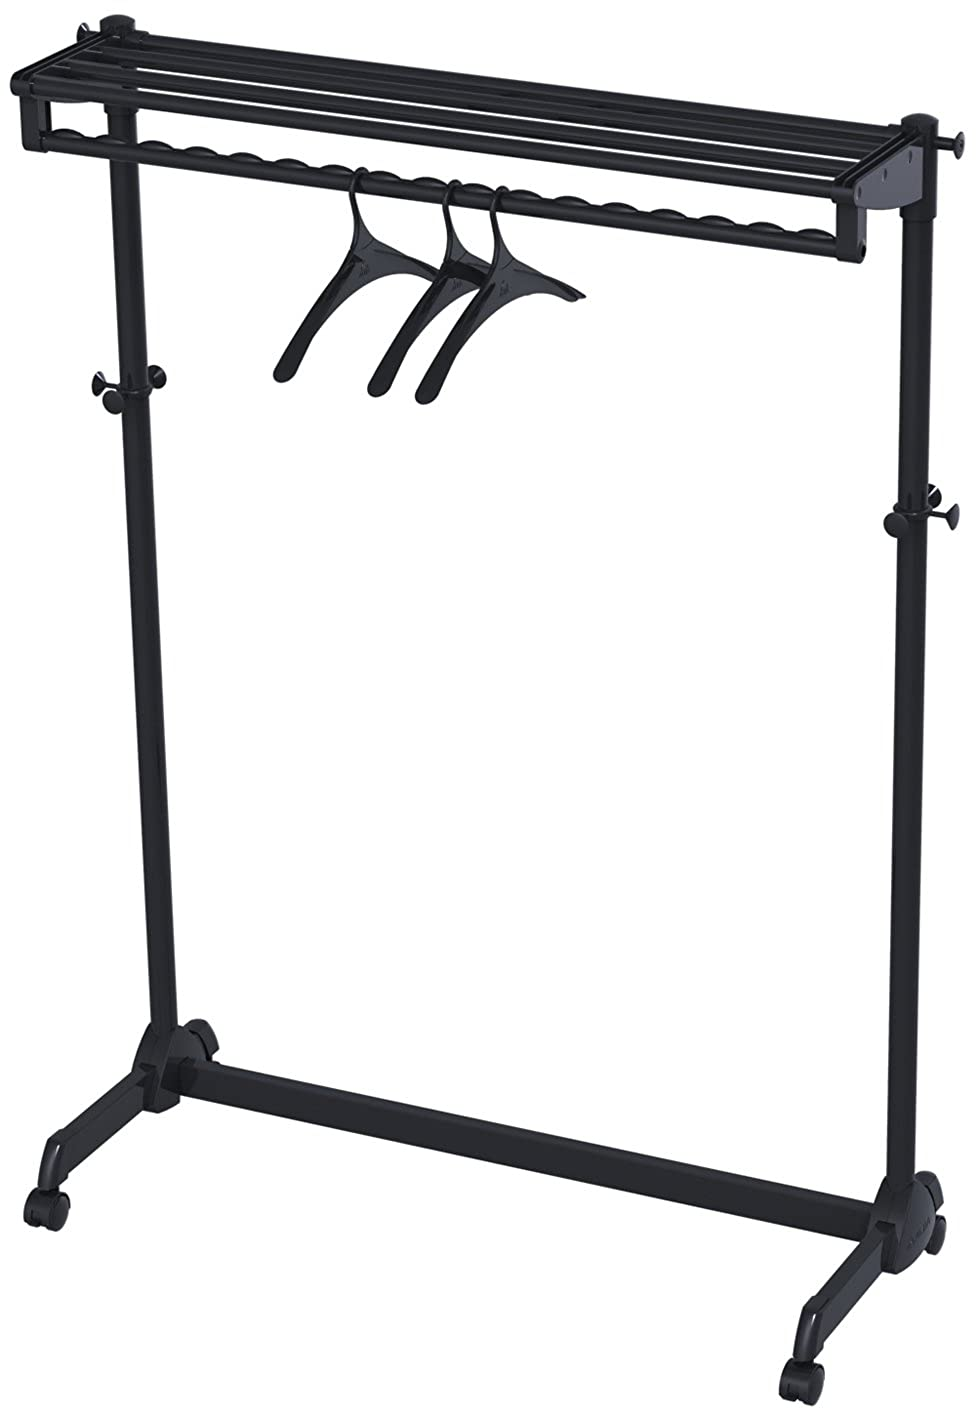 Alba PMRAK-SG483N Mobile Garment Rack on wheels in Black, 1 shelf, 8 Hooks for accessories and 3 Hangers B007T6L5S4